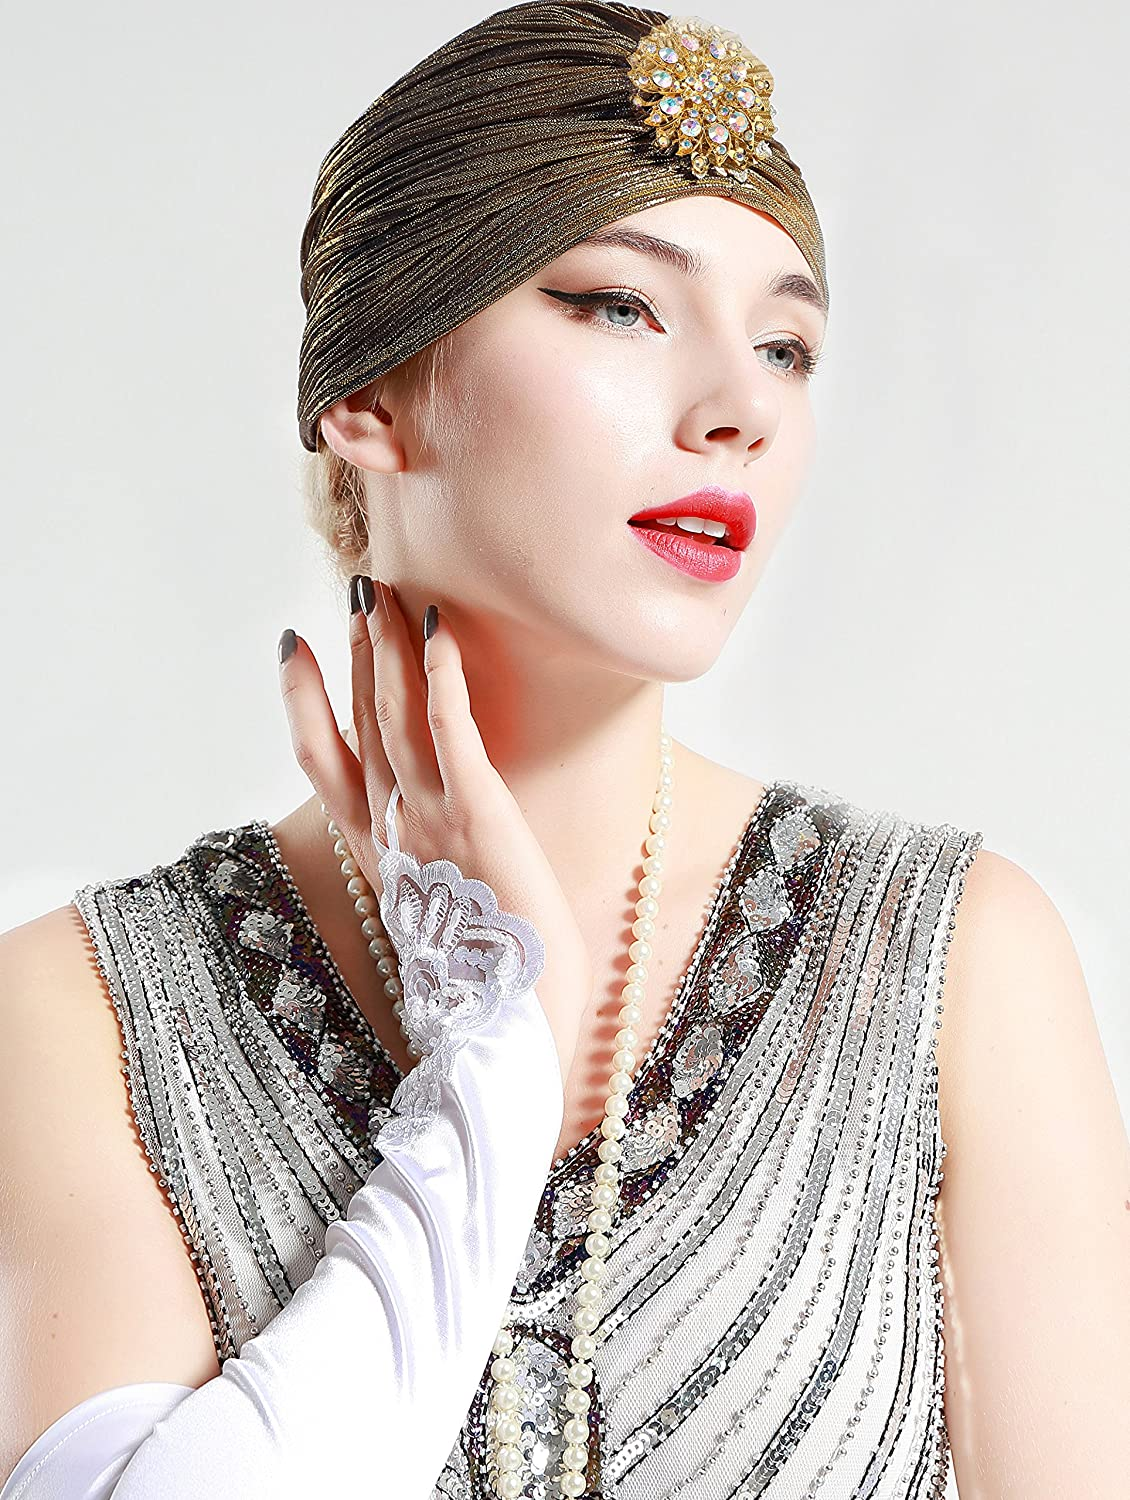 Women's Vintage Hats | Old Fashioned Hats | Retro Hats BABEYOND Womens Ruffle Turban Hat Knit Turban Headwraps with Detachable Crystal Brooch for 1920s Gatsby Party $11.99 AT vintagedancer.com